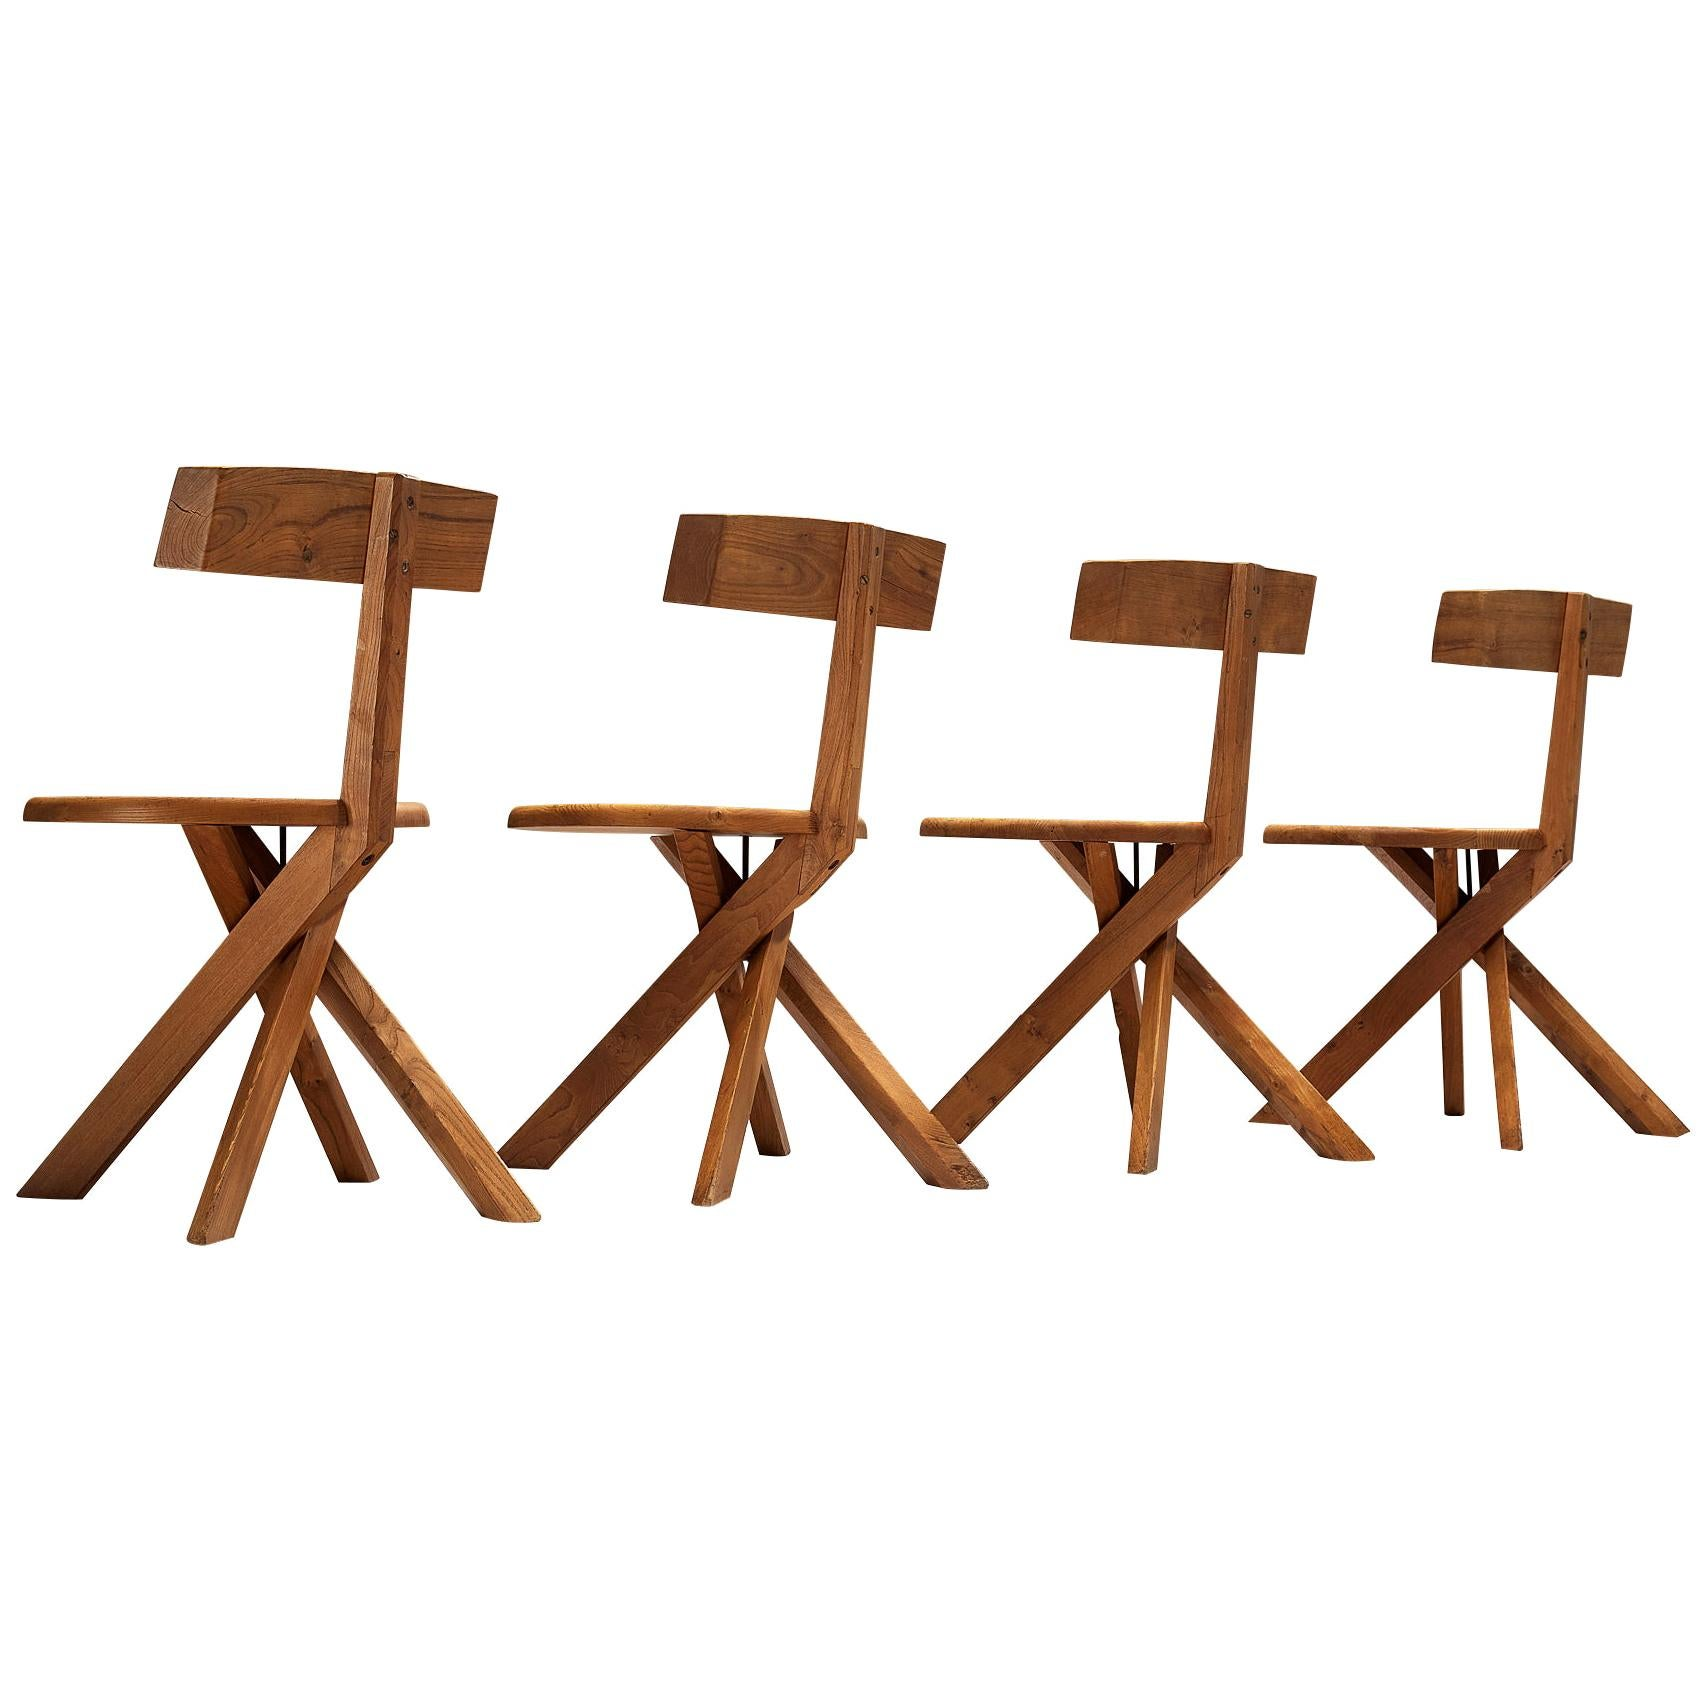 Pierre Chapo Sculptural Chairs Model 'S34' in Solid Elm